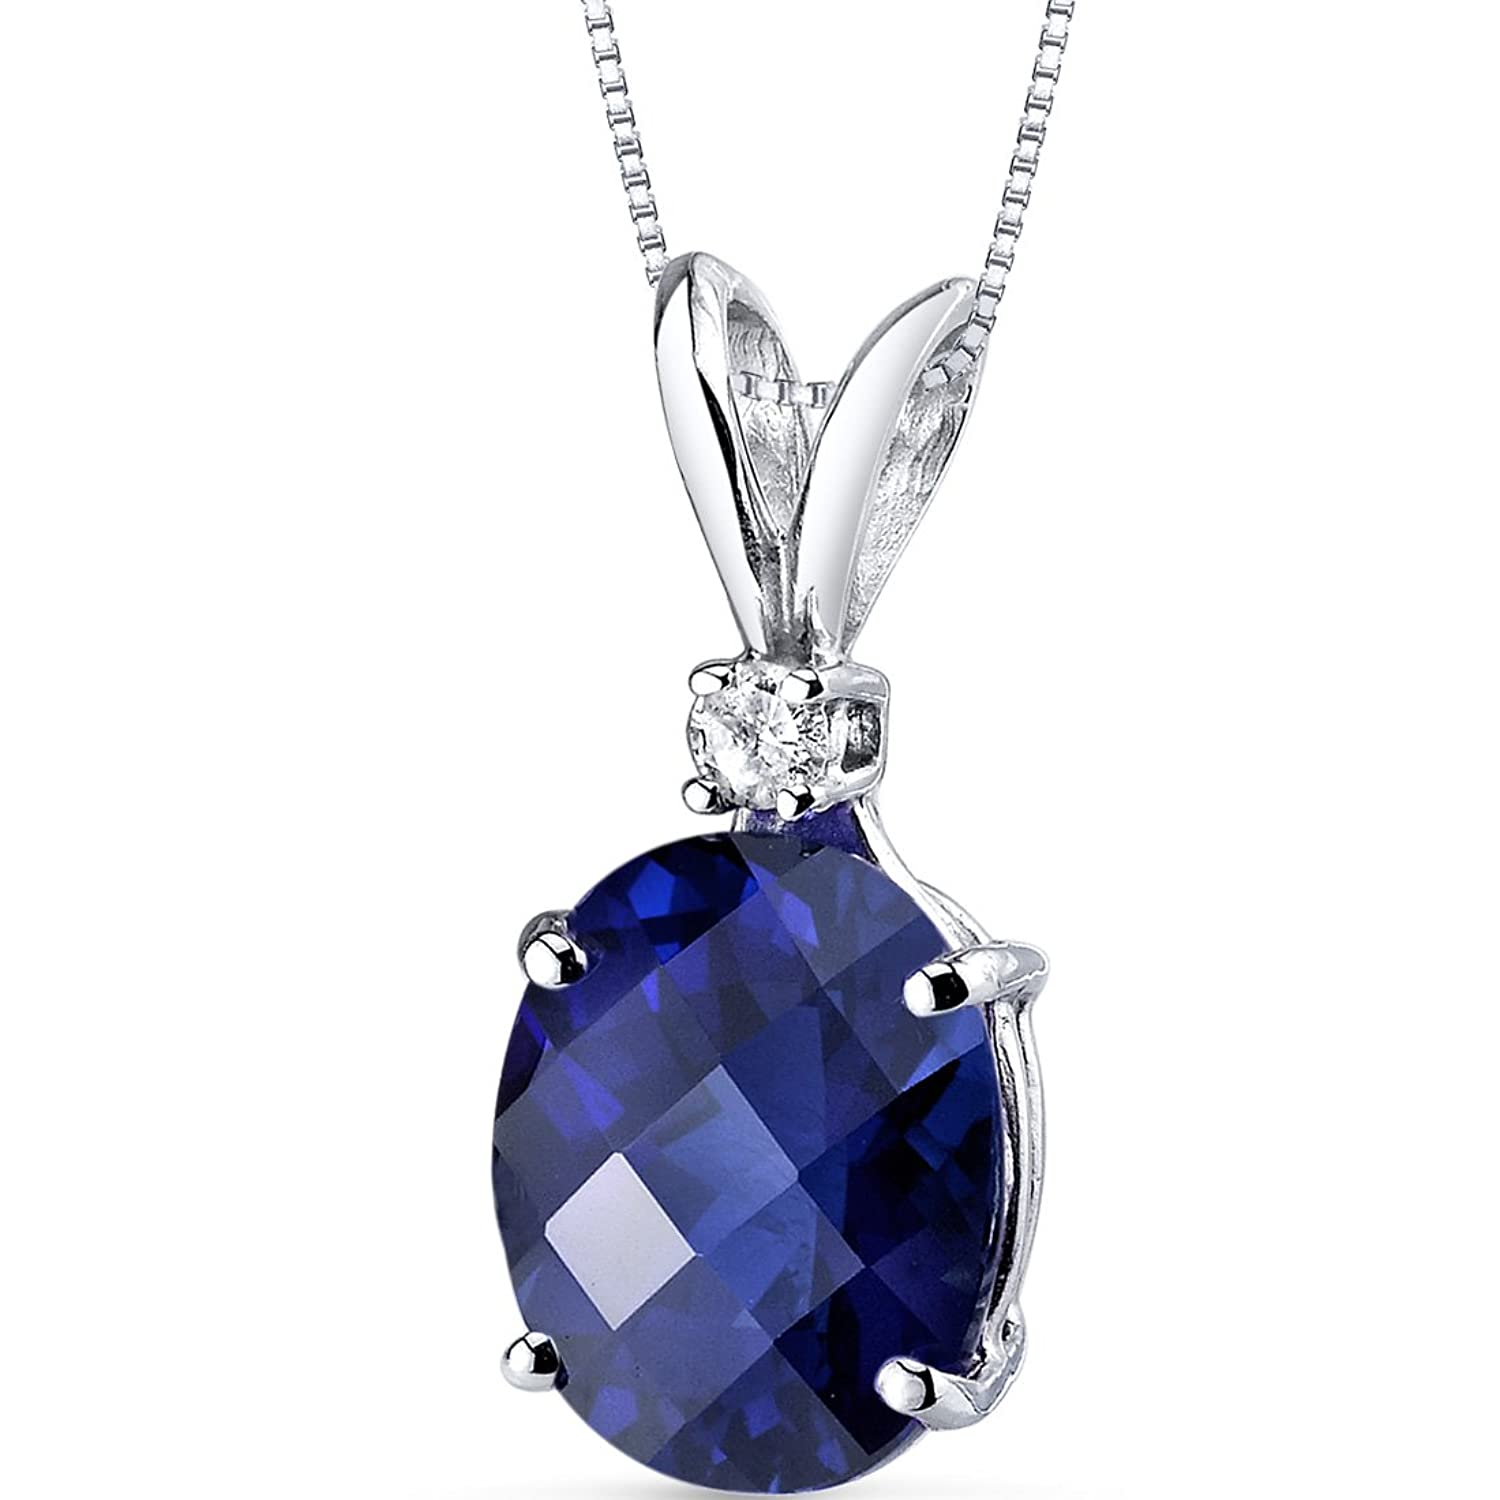 Amazon 14 karat white gold oval shape 350 carats created blue amazon 14 karat white gold oval shape 350 carats created blue sapphire diamond pendant jewelry aloadofball Image collections